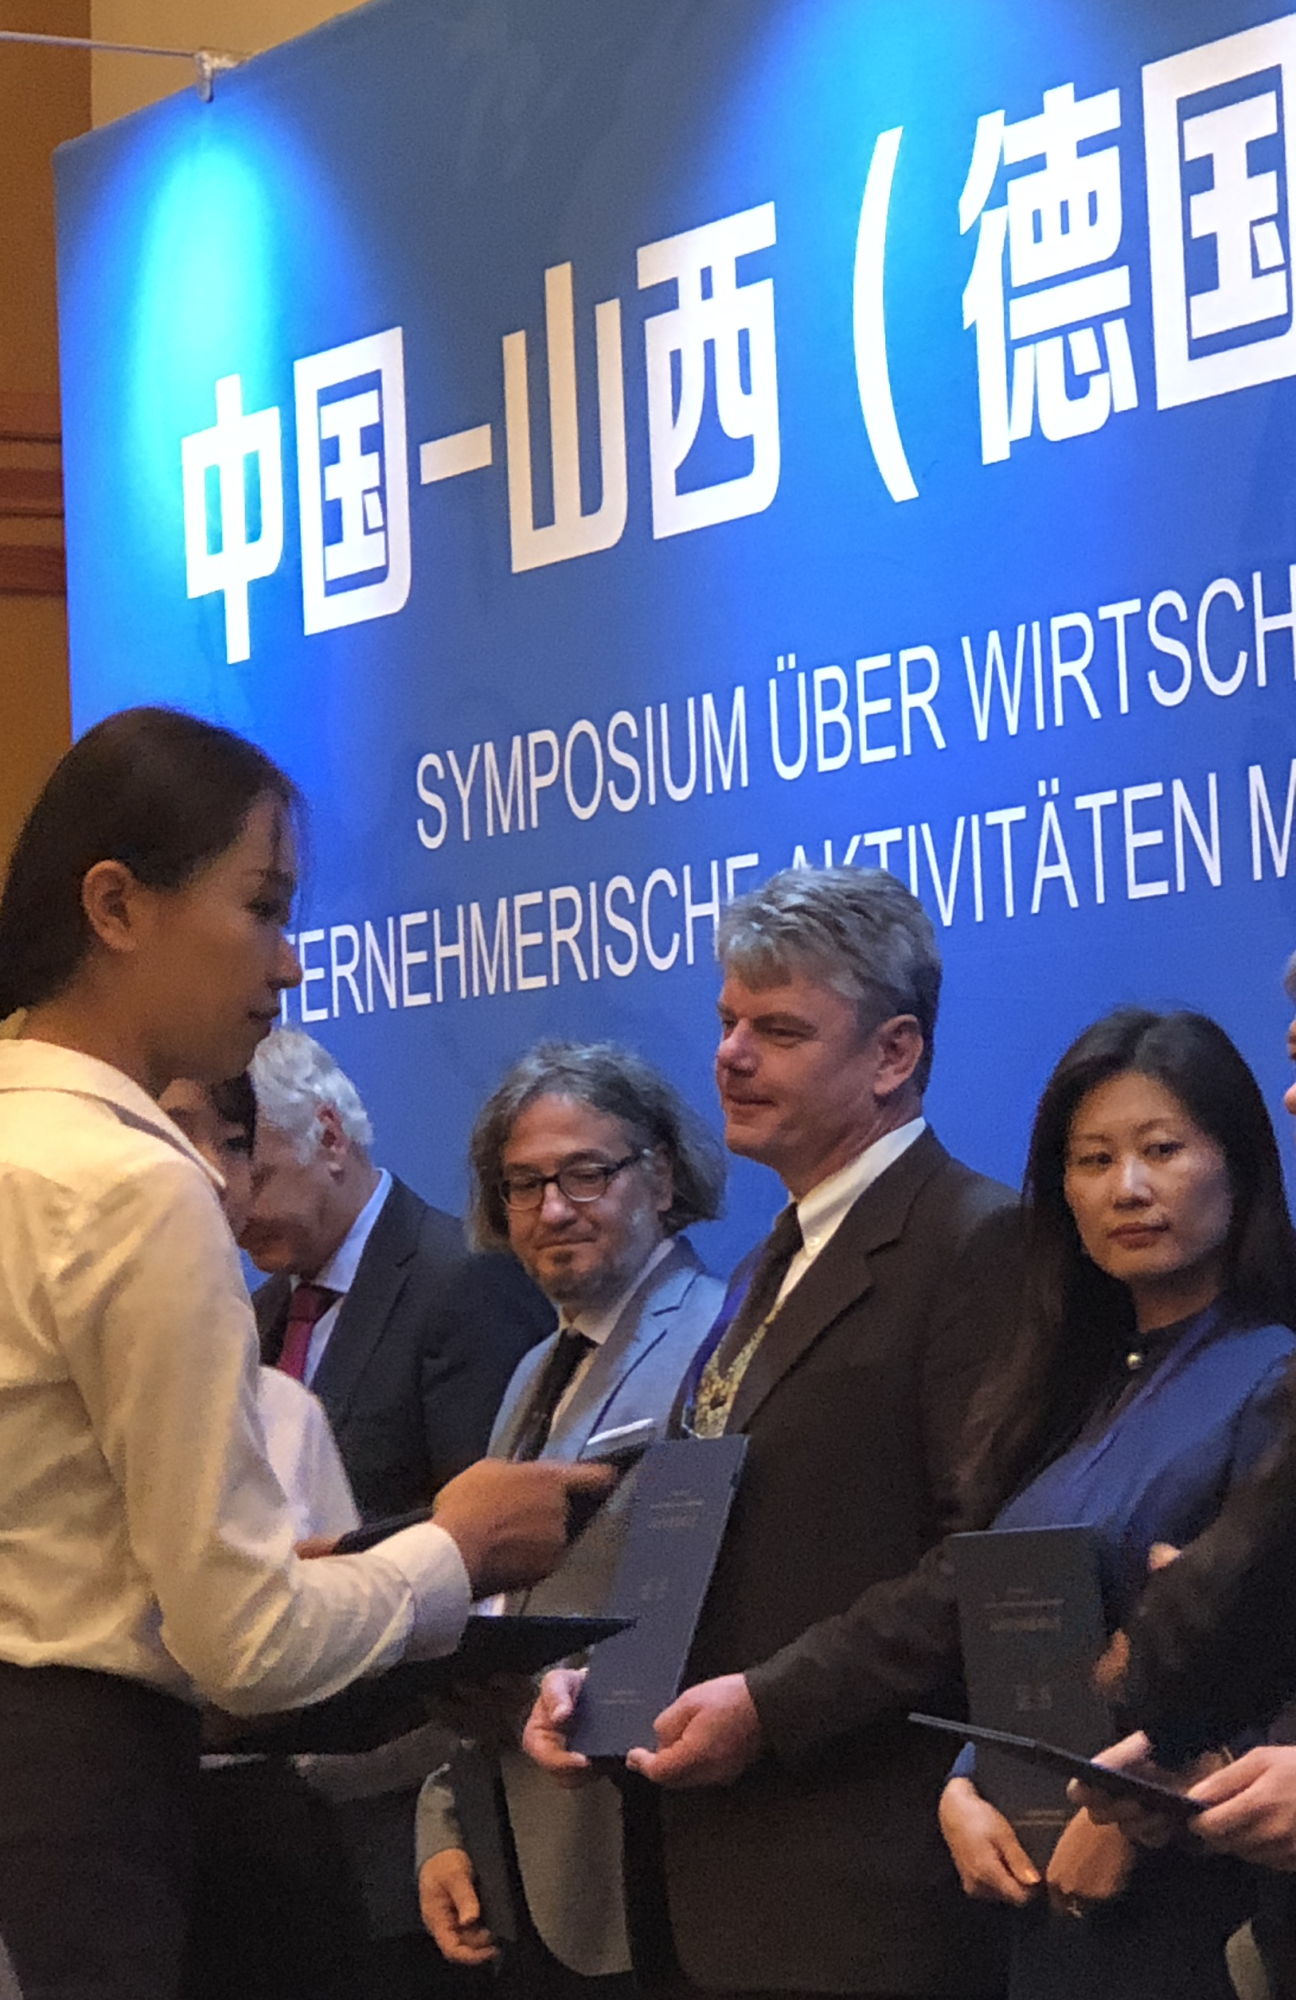 Handing over of the certificate to Andreas P. Fröba